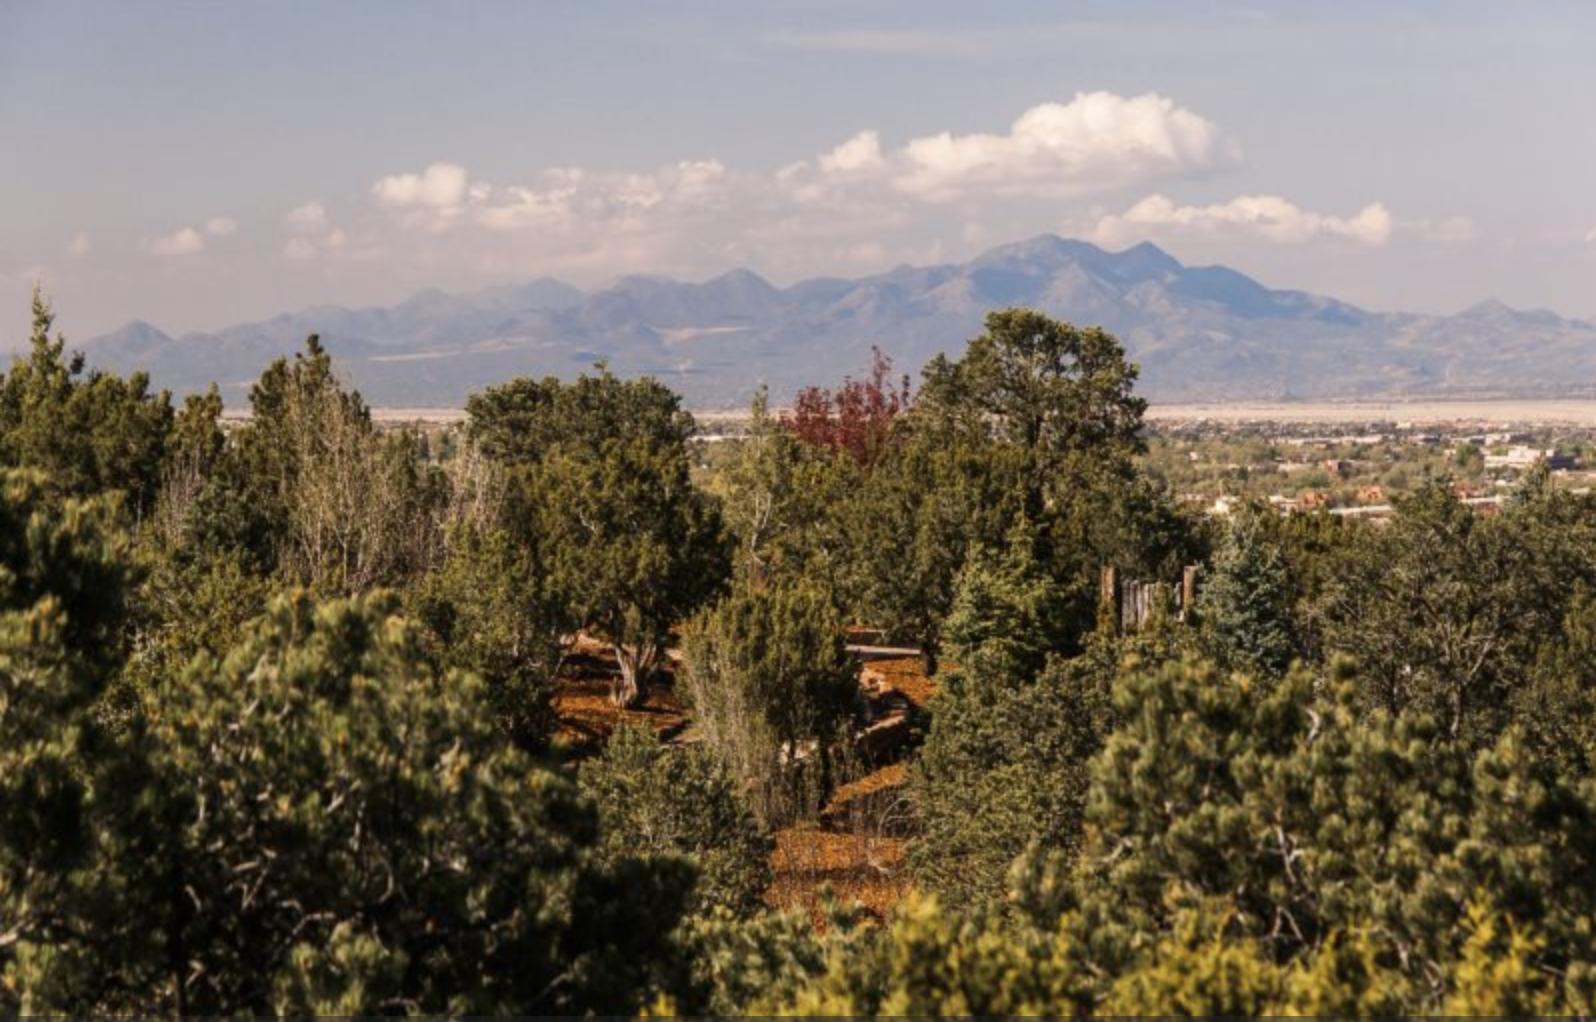 Vacation rental with a view in Santa Fe NM | Adobe Destinations